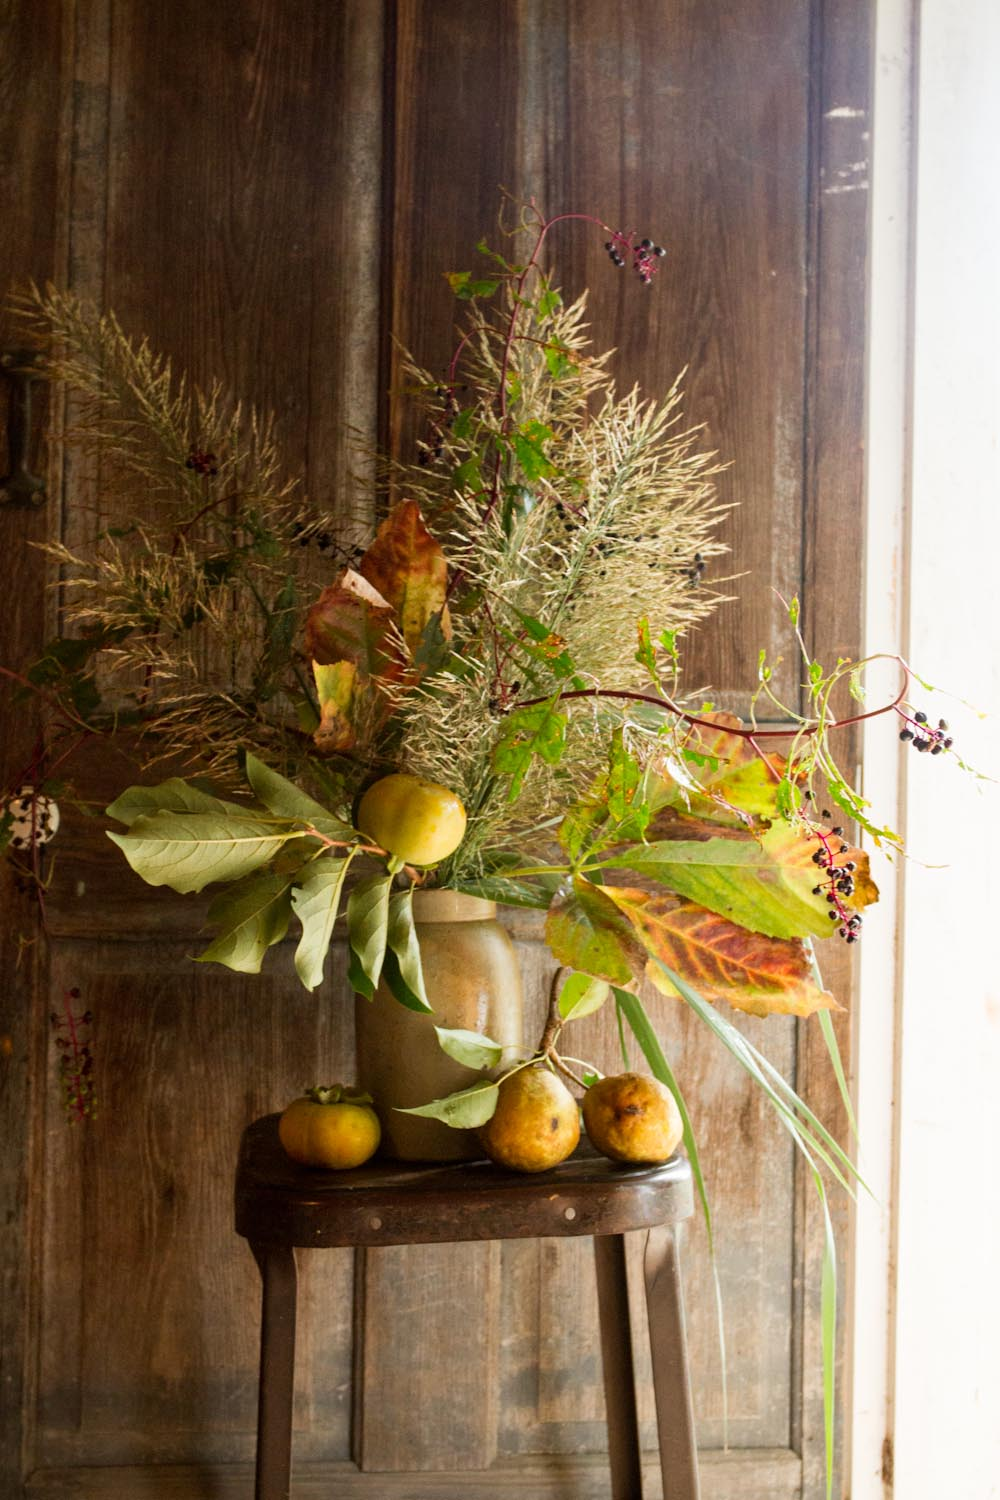 seasonal_bloom_fall fruits and grasses-4469.jpg